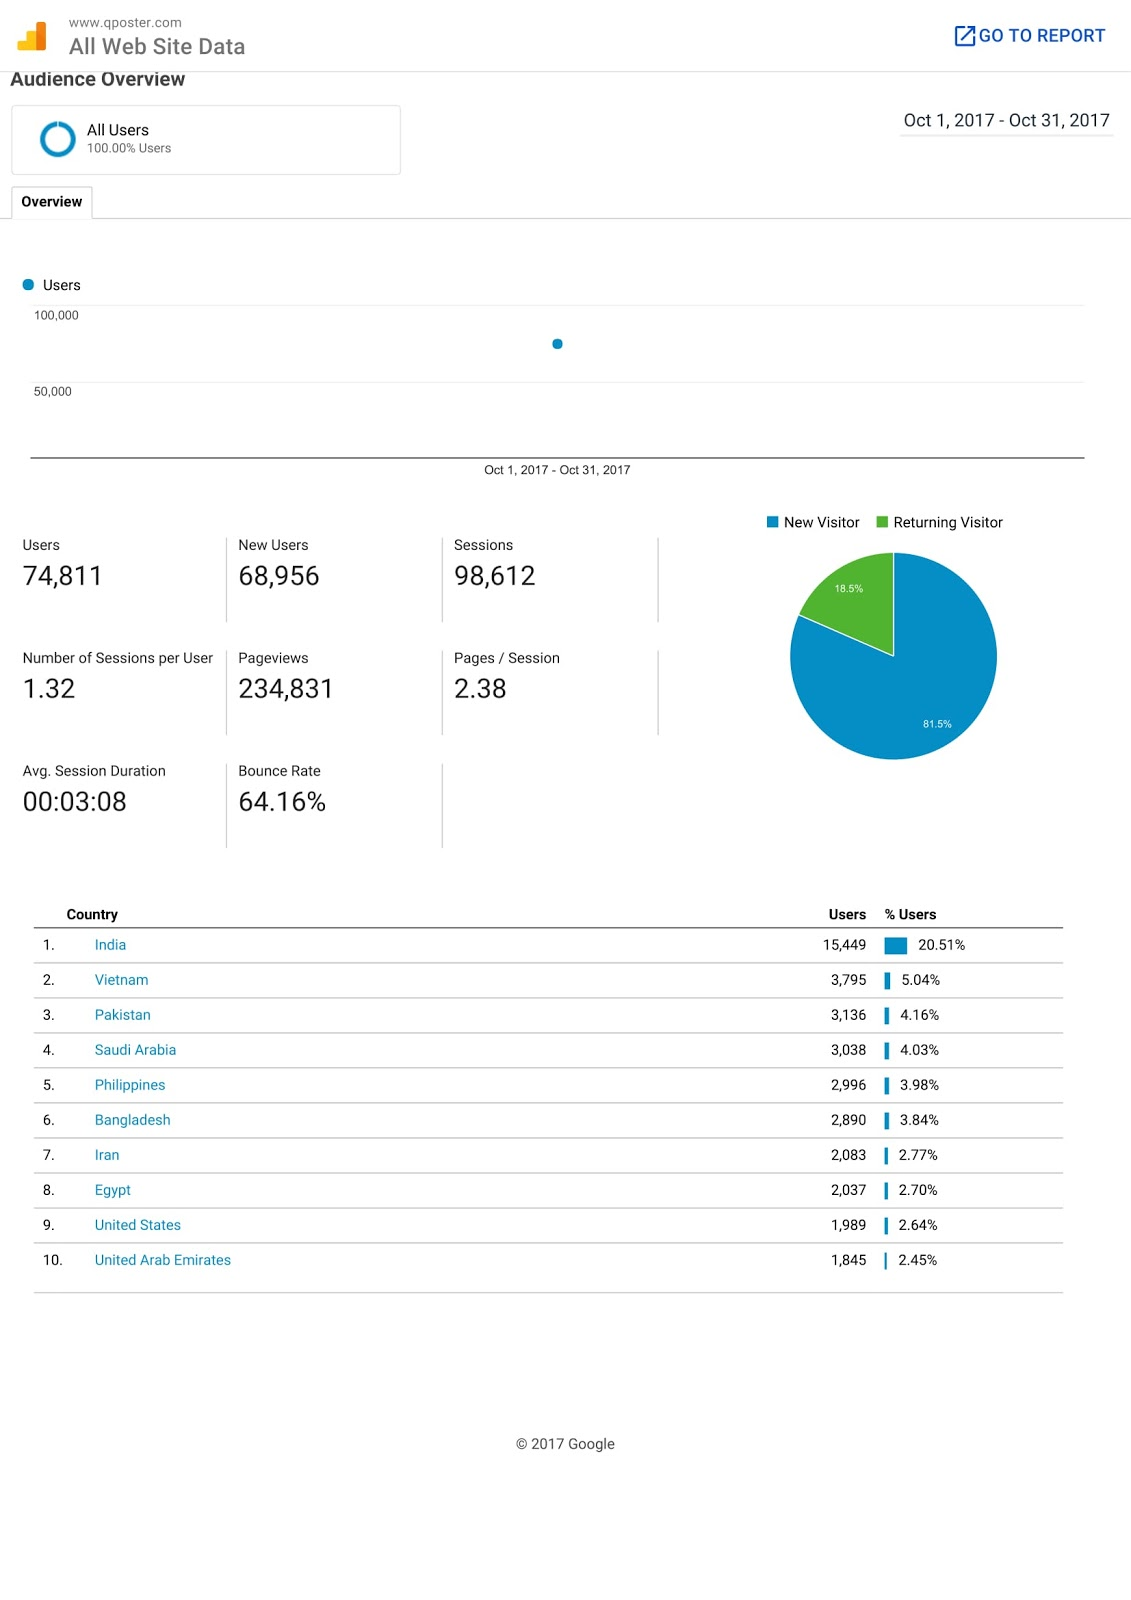 Analytics Data of www.qposter.com